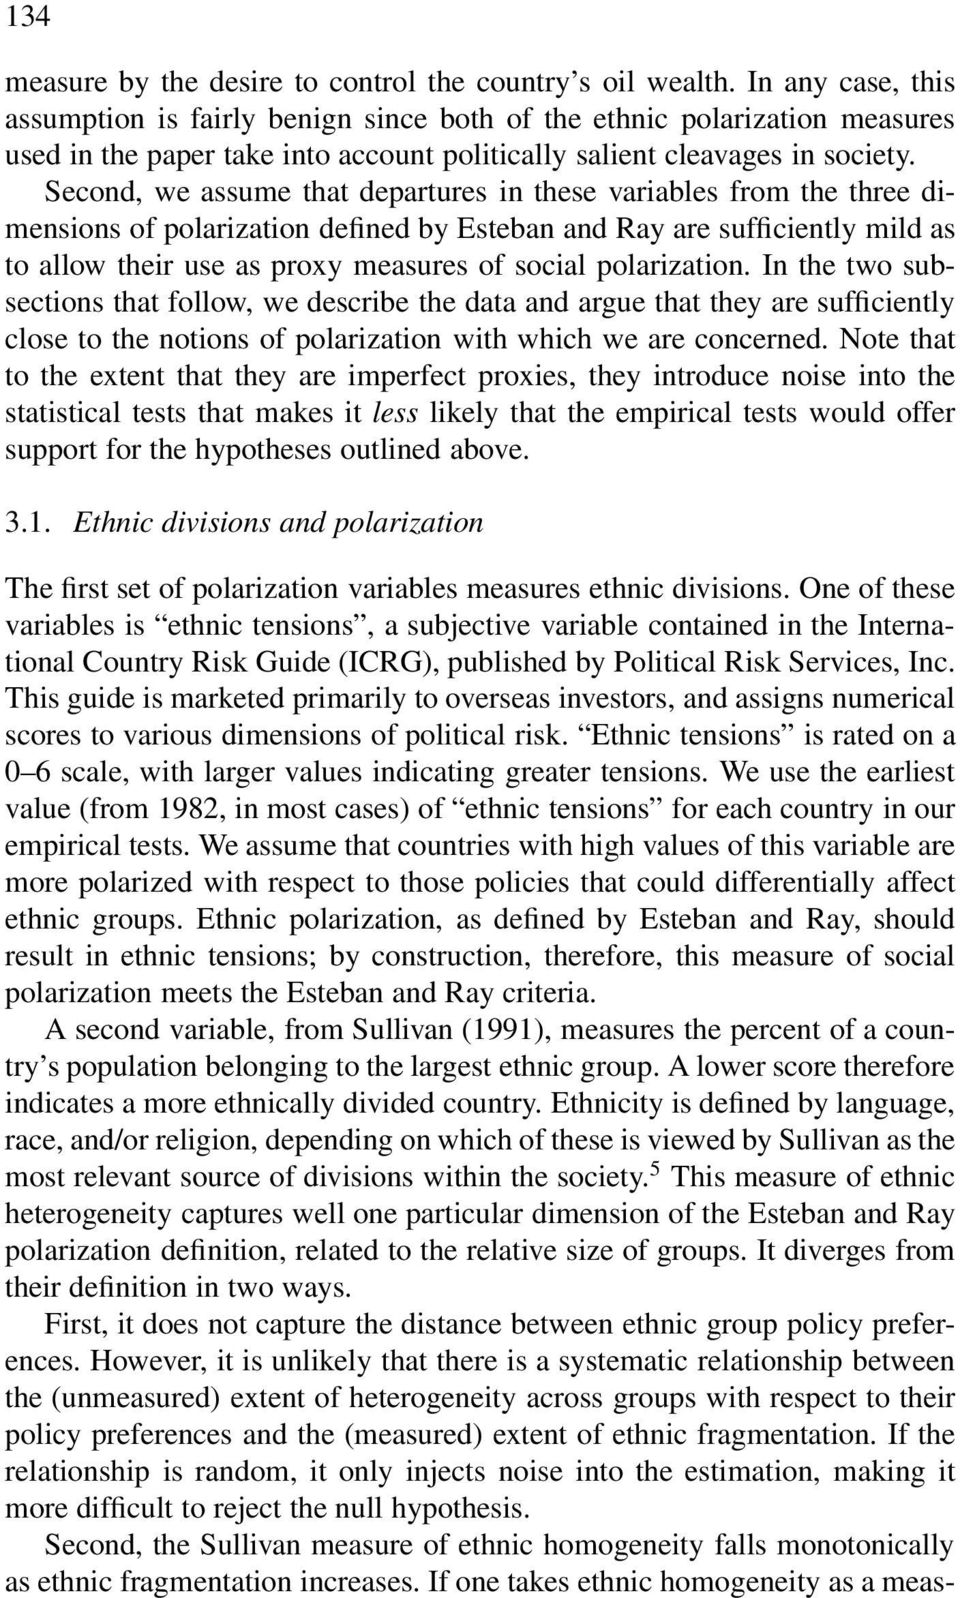 Second, we assume that departures in these variables from the three dimensions of polarization defined by Esteban and Ray are sufficiently mild as to allow their use as proxy measures of social